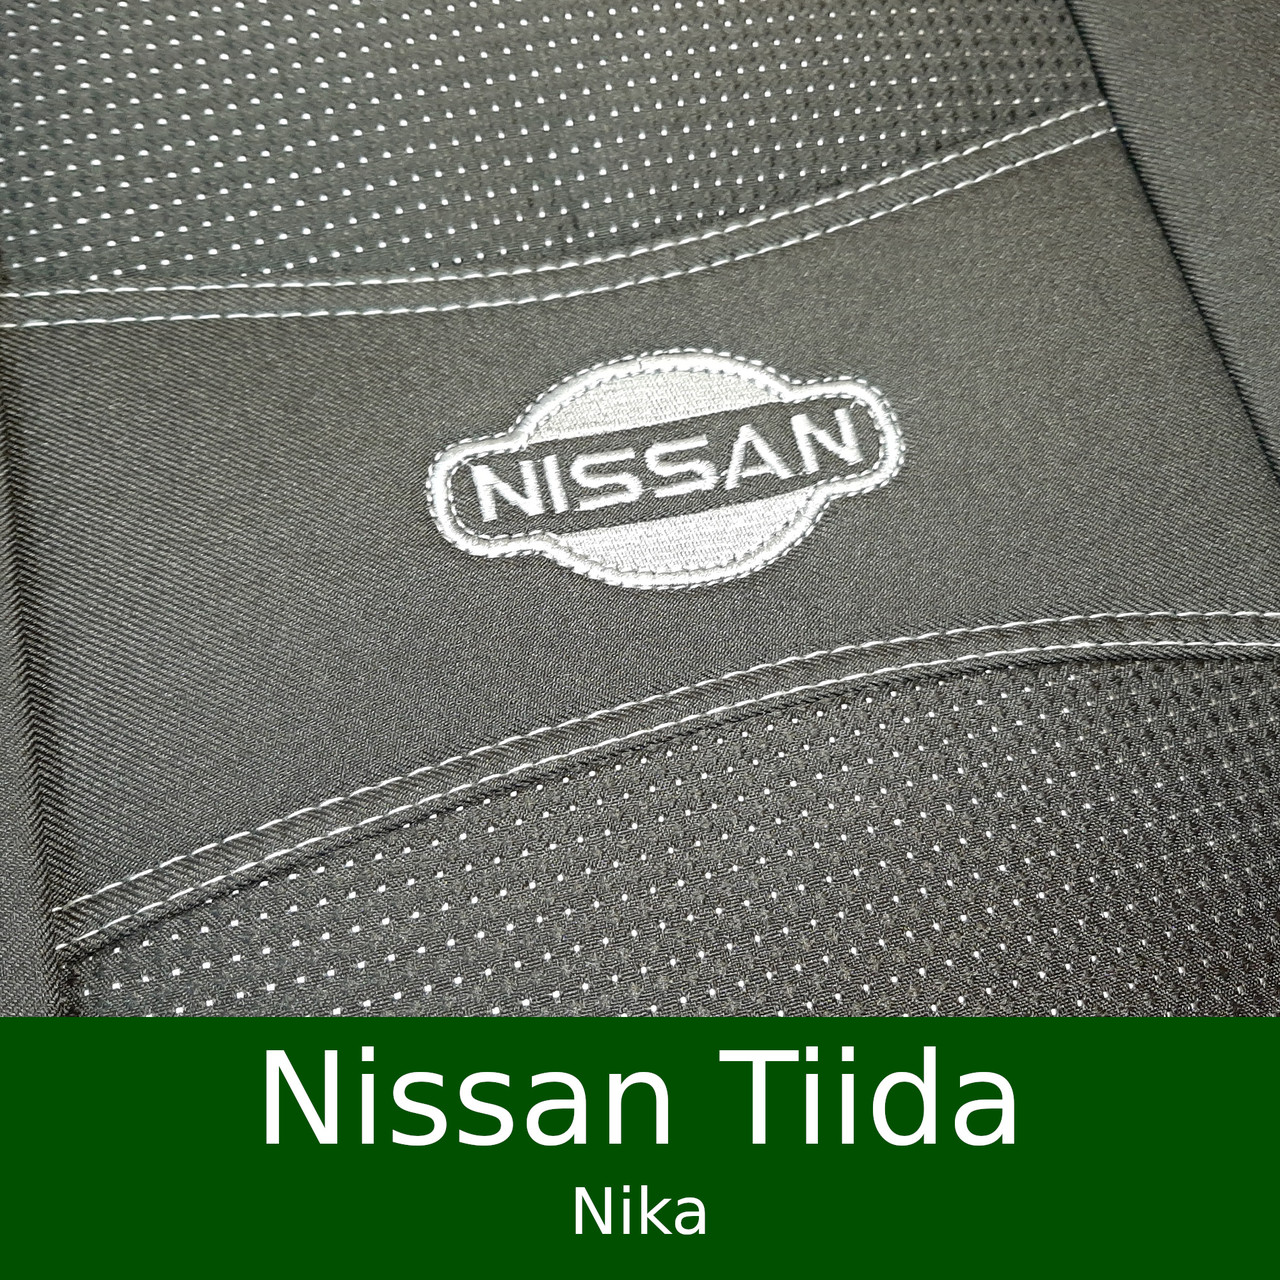 Чехлы на сиденья Nissan Tiida hatchback/sedan 2004-2012 (Nika)